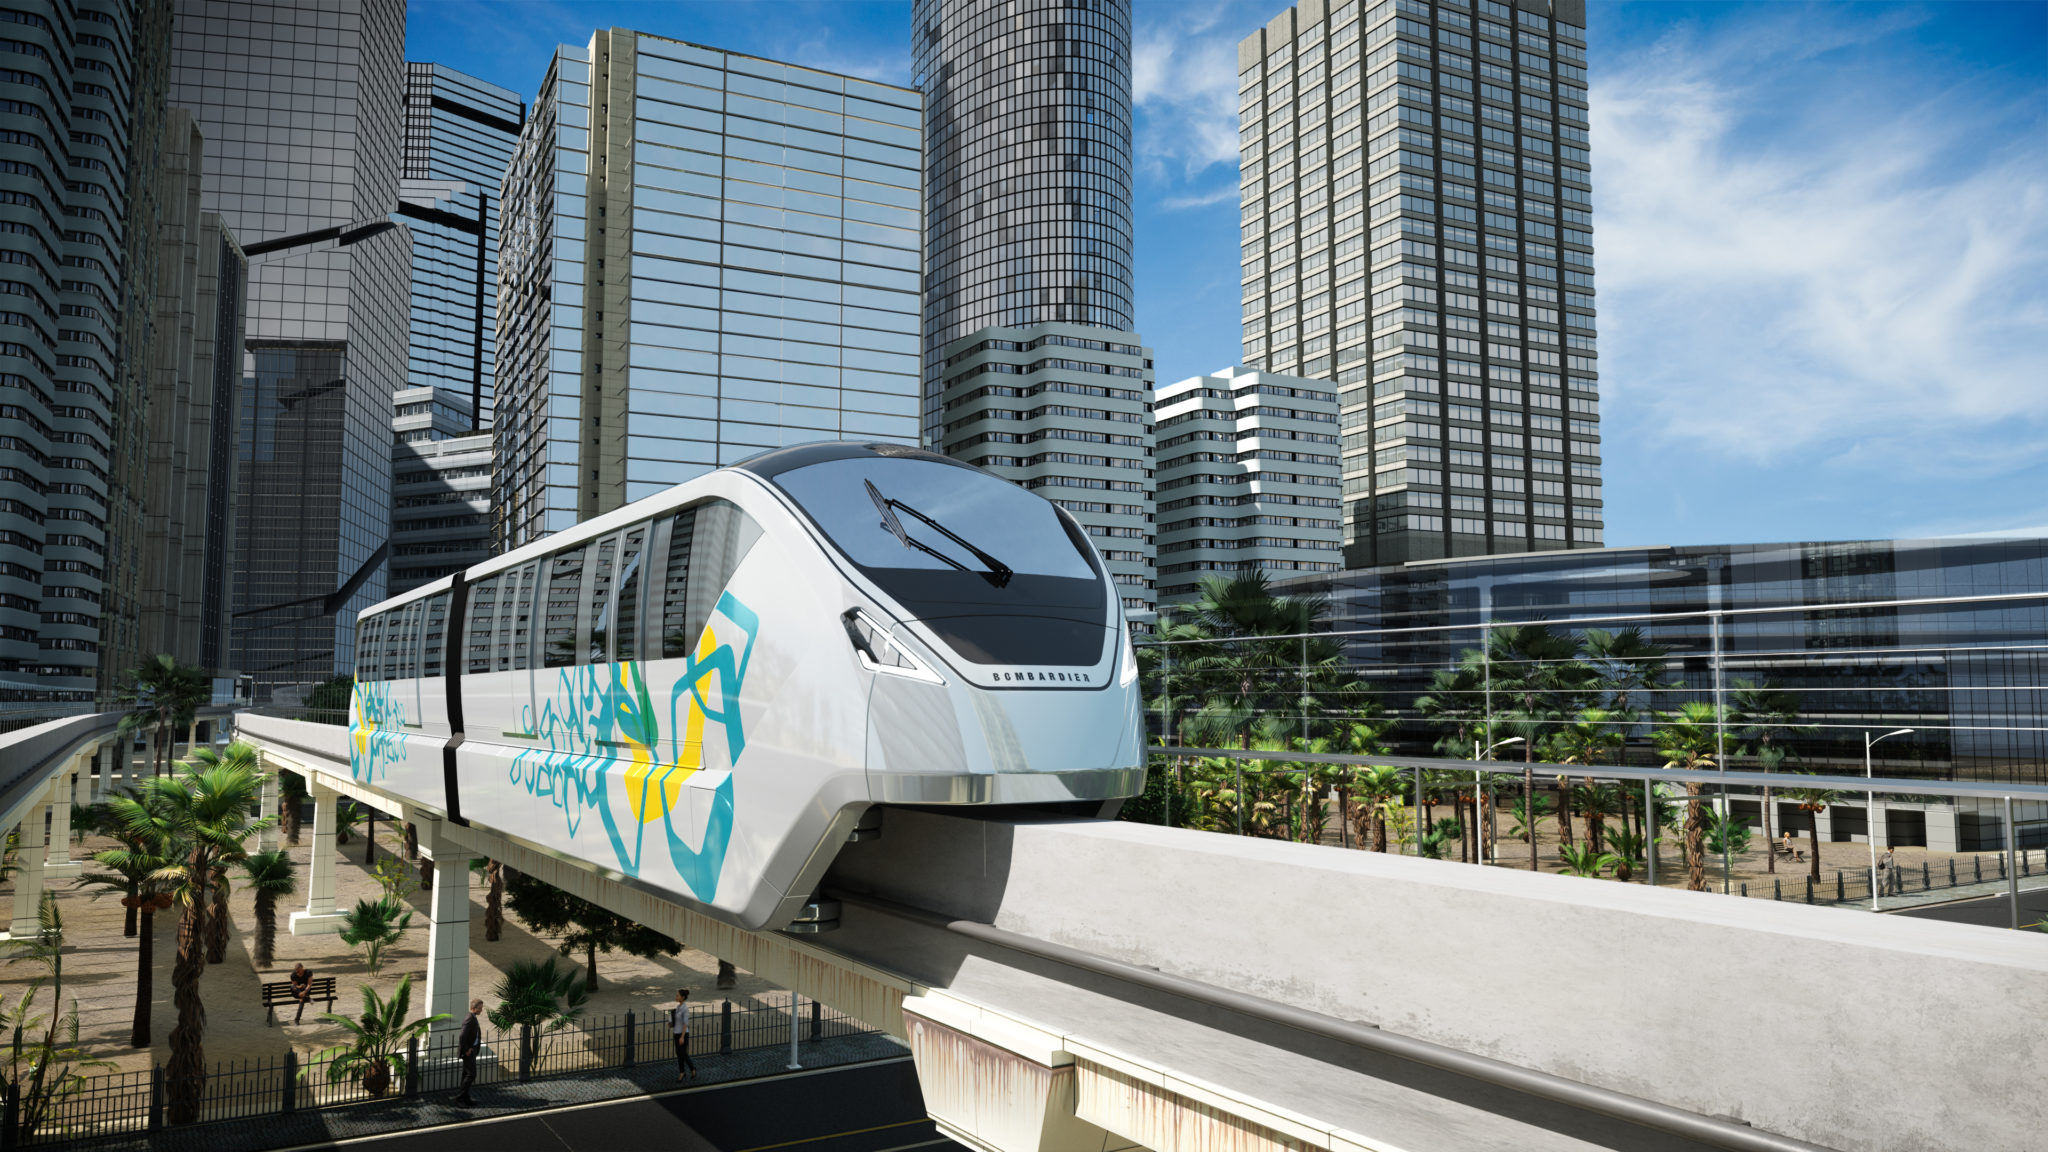 Bombardier's INNOVIA 300 monorail system for Bangkok